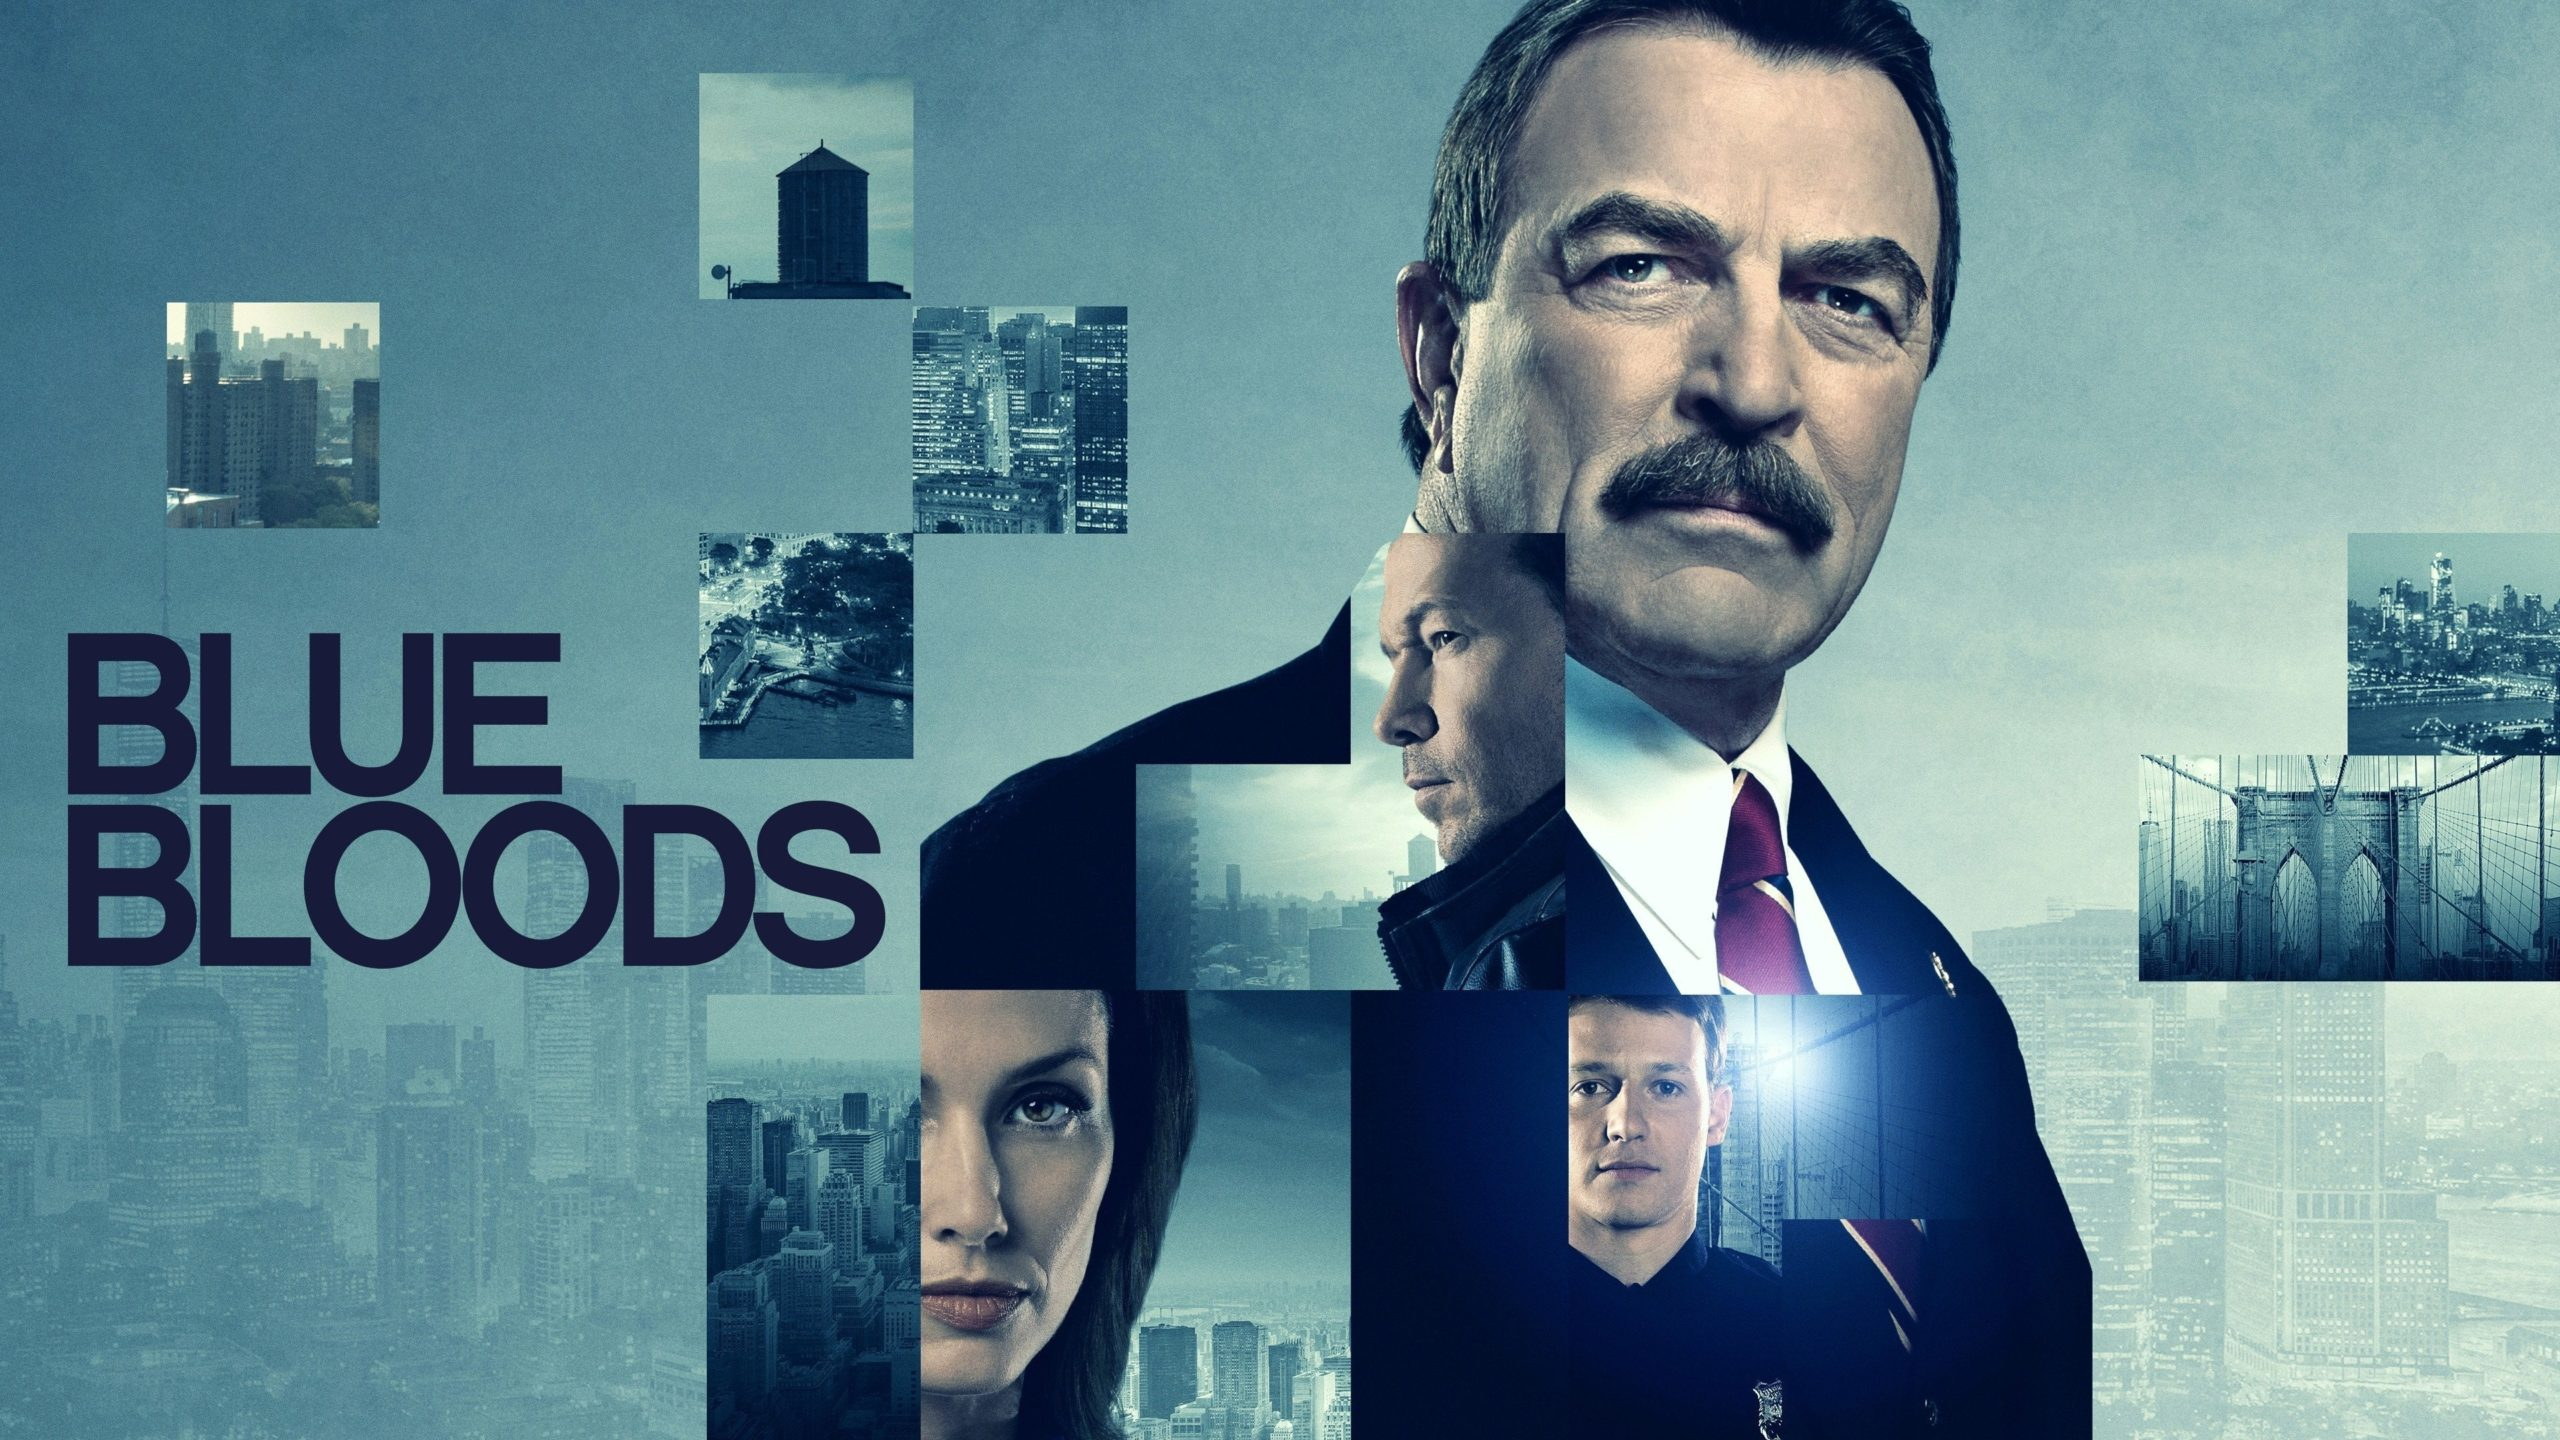 Blue Bloods Season 11 Episode 1 Releases